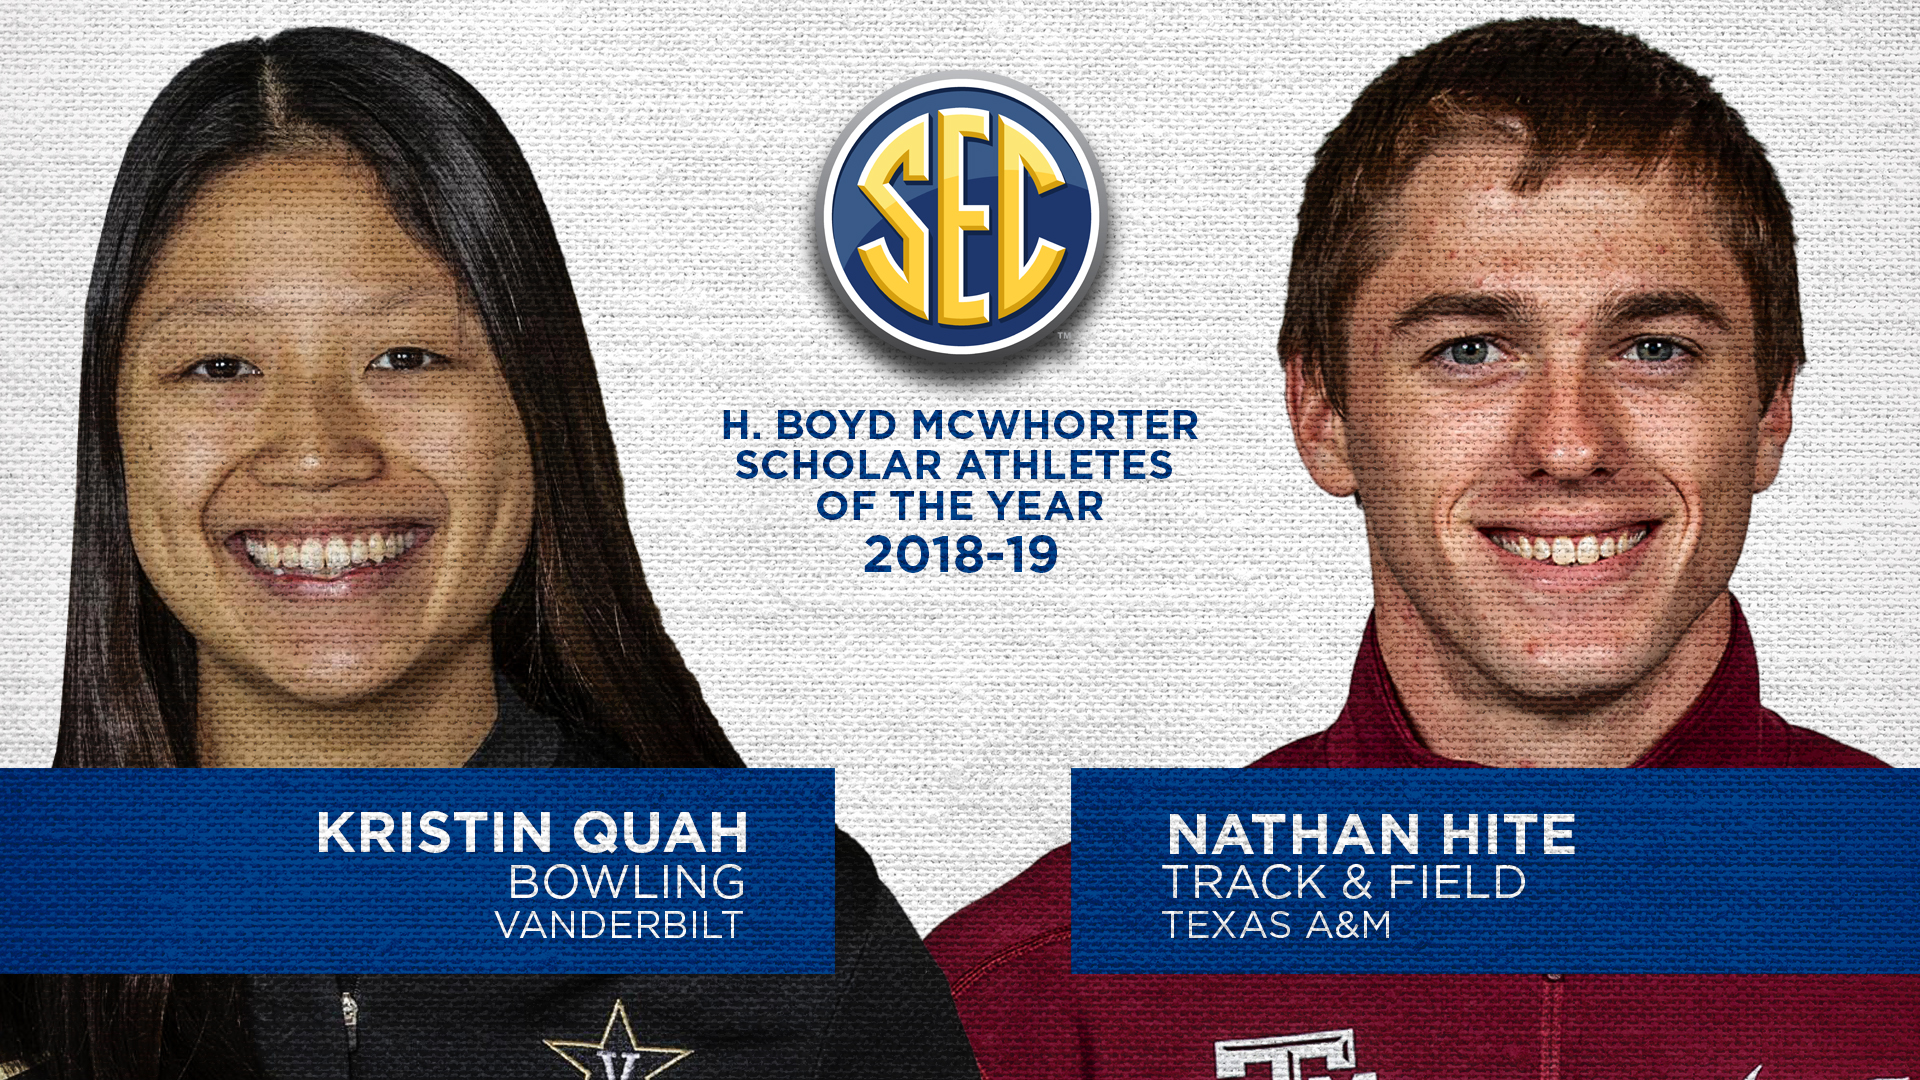 Hite, Quah named McWhorter Scholar-Athletes of the Year